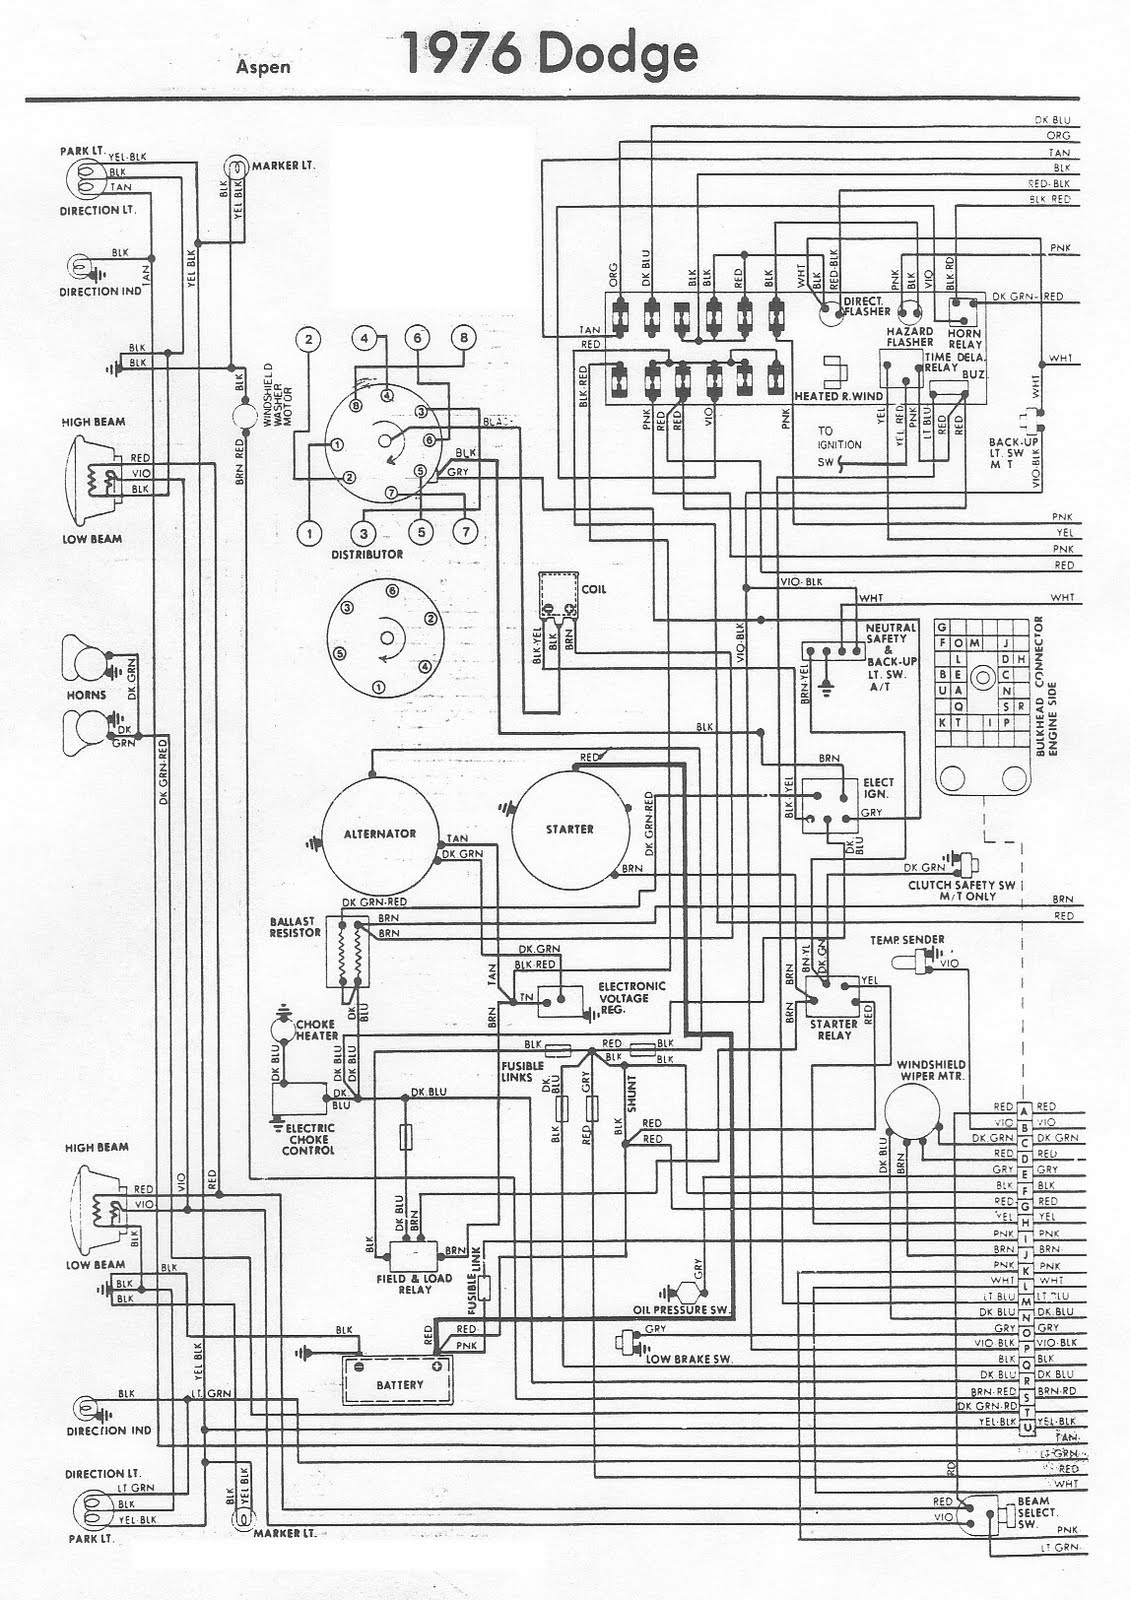 chrysler aspen wiring diagram circuit diagram symbols u2022 rh  veturecapitaltrust co Chrysler Wiring Diagram Symbols 2007 chrysler aspen  radio wiring ...